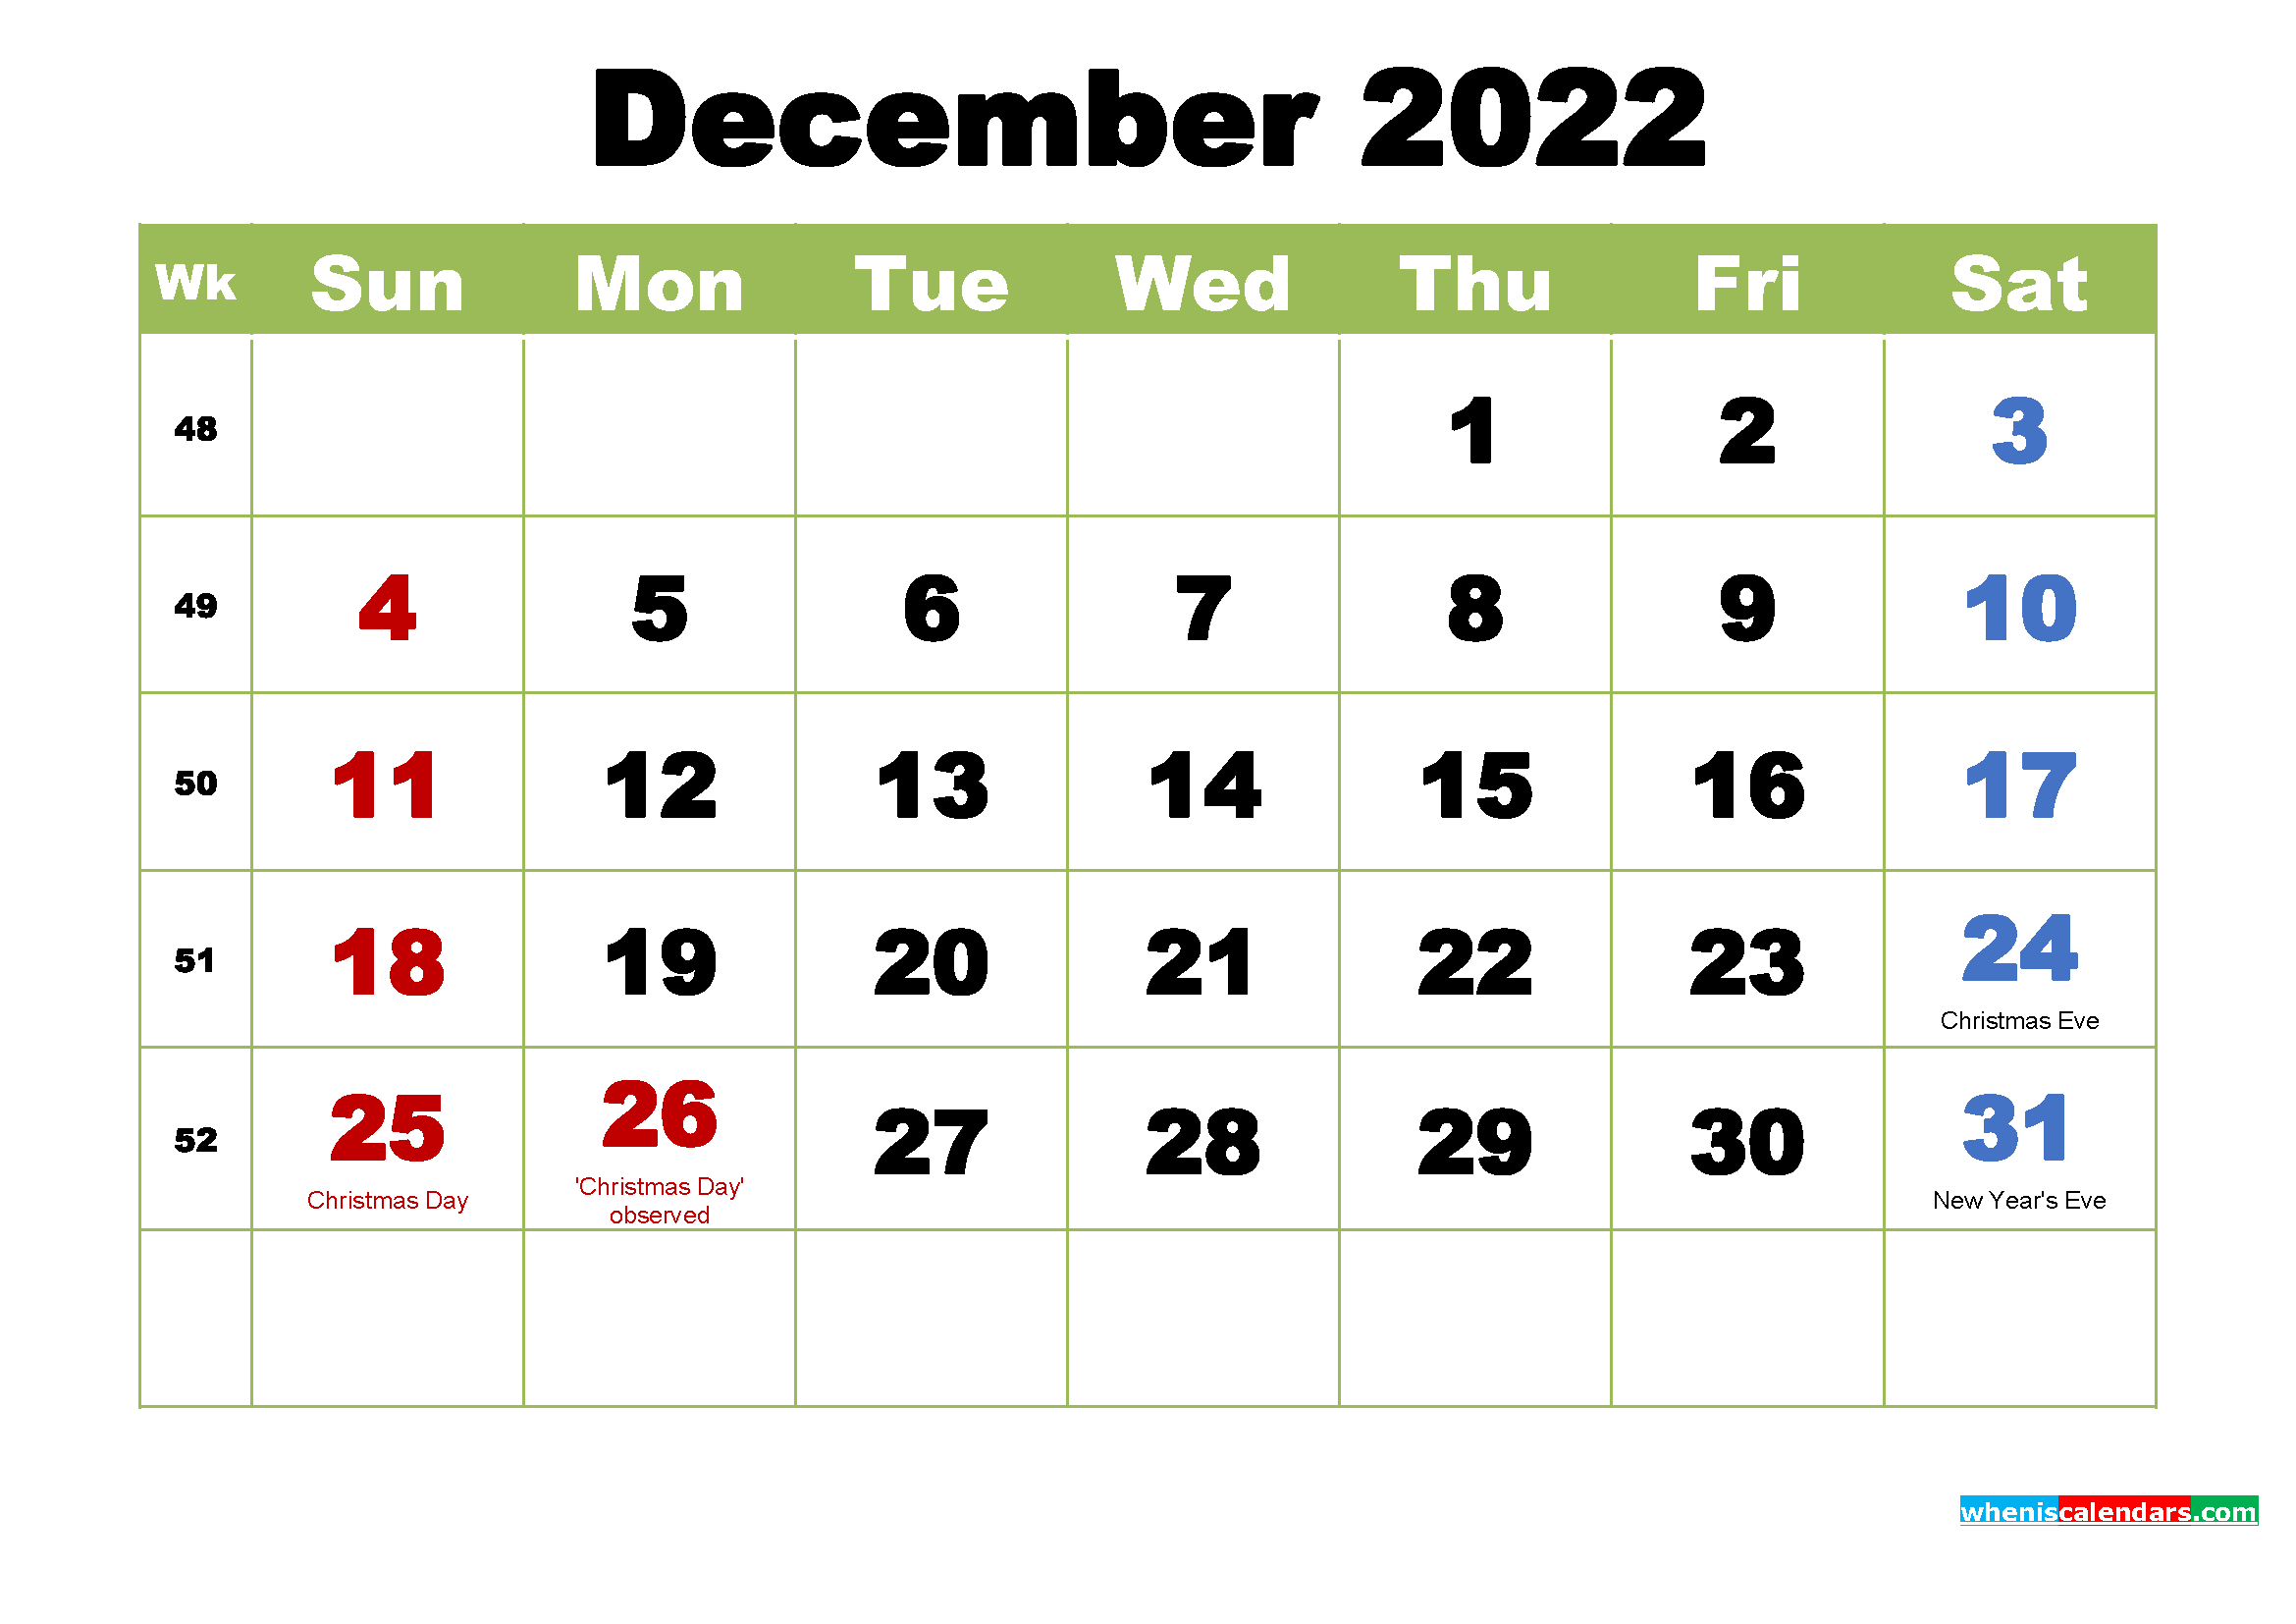 Free December 2022 Printable Calendar with Holidays